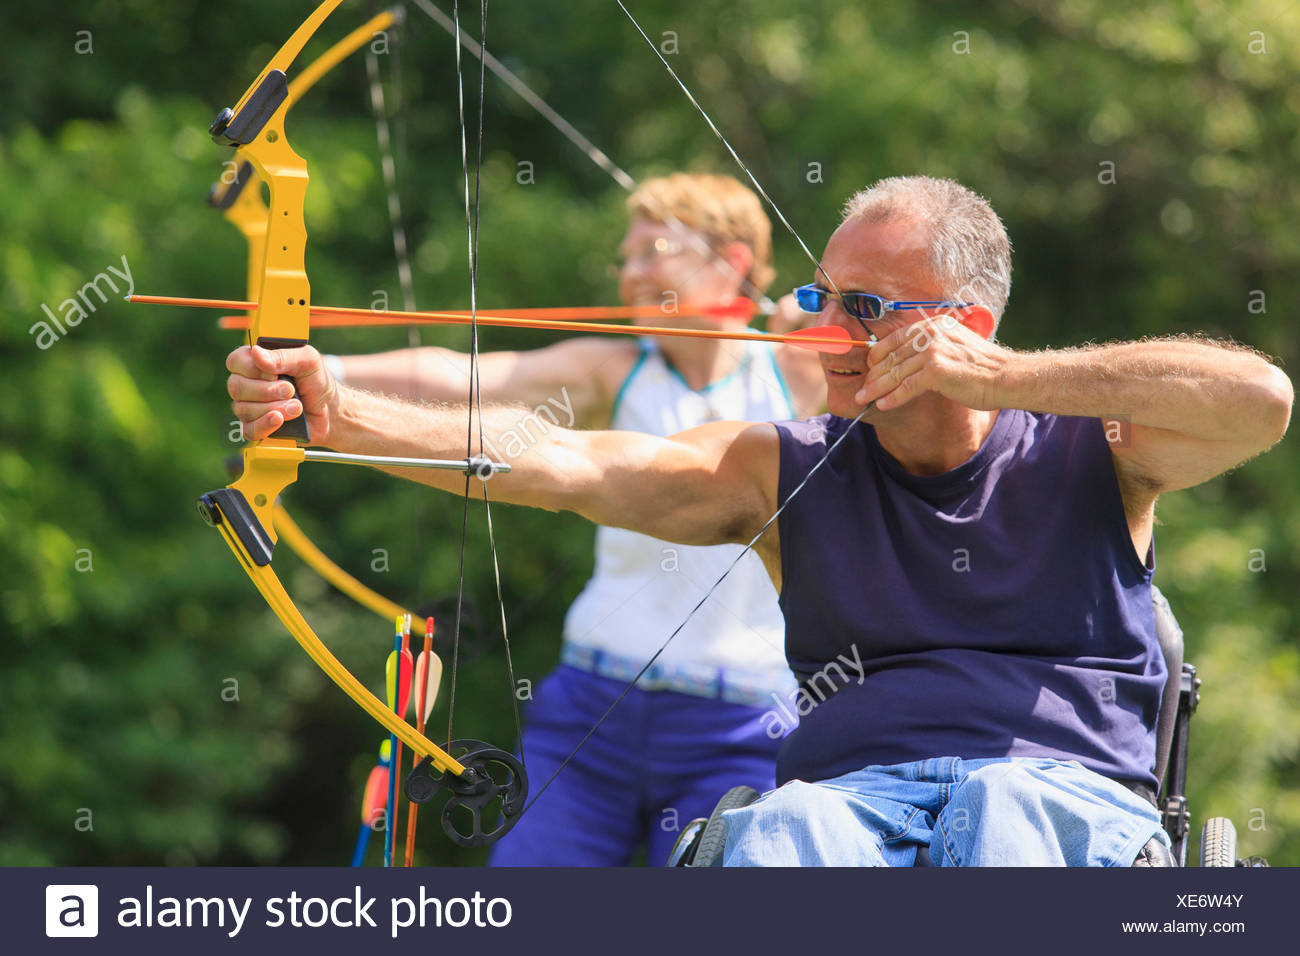 Man with spinal cord injury and woman with prosthetic leg aiming arrows at target - Stock Image